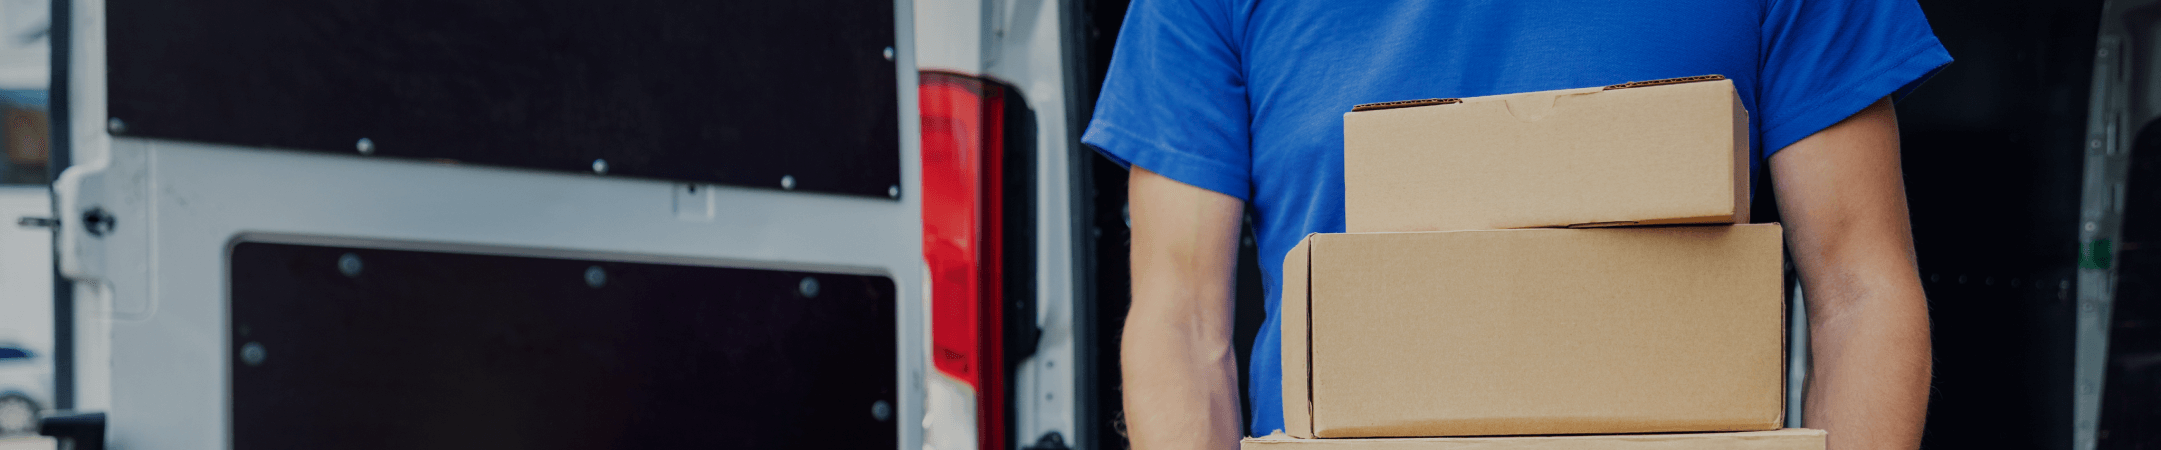 Delivery driver holding three brown boxes in front of a delivery van.